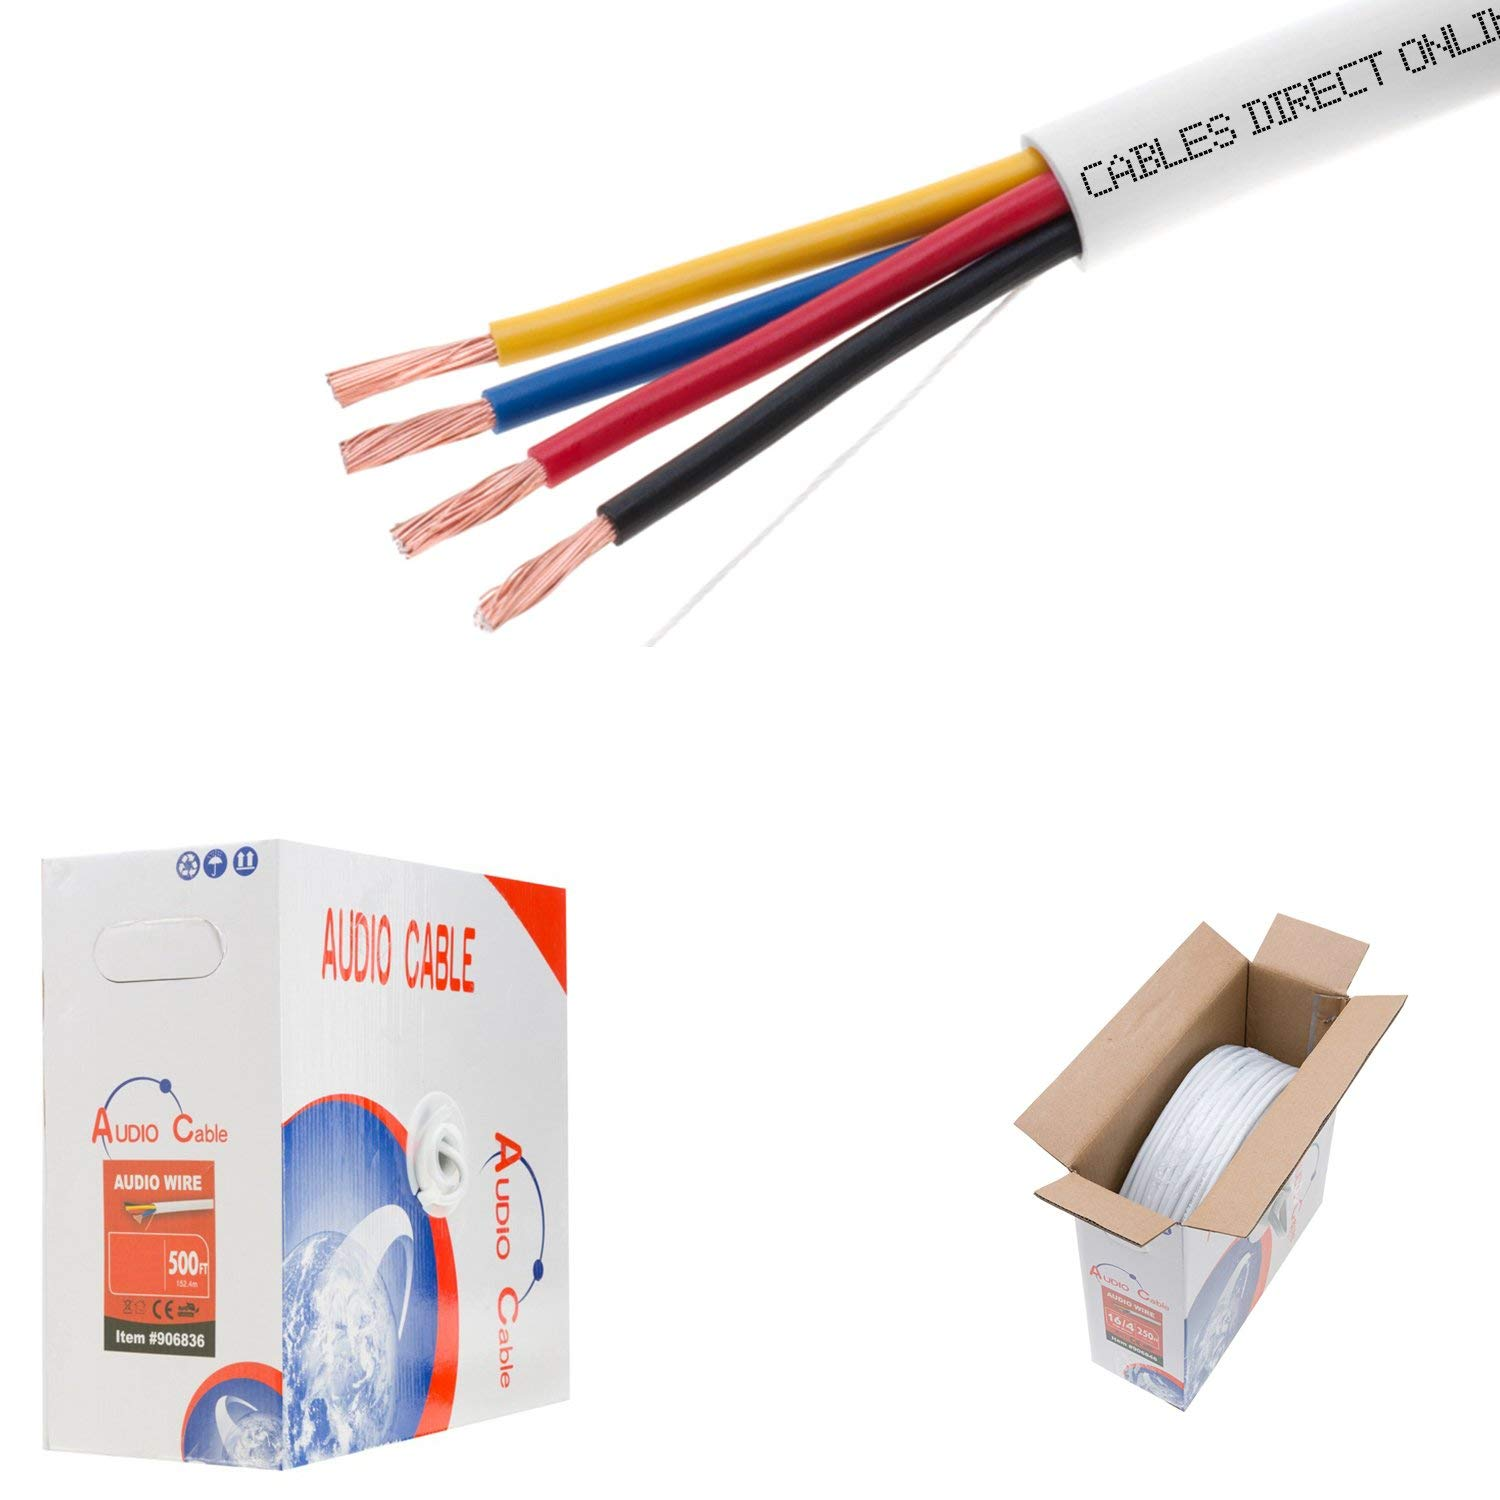 250ft 16AWG 4 Conductors (16/4) CL2 Rated Loud Speaker Cable Wire, Pull Box (for in-Wall Installation) (16AWG / 4 Conductors, 250ft)